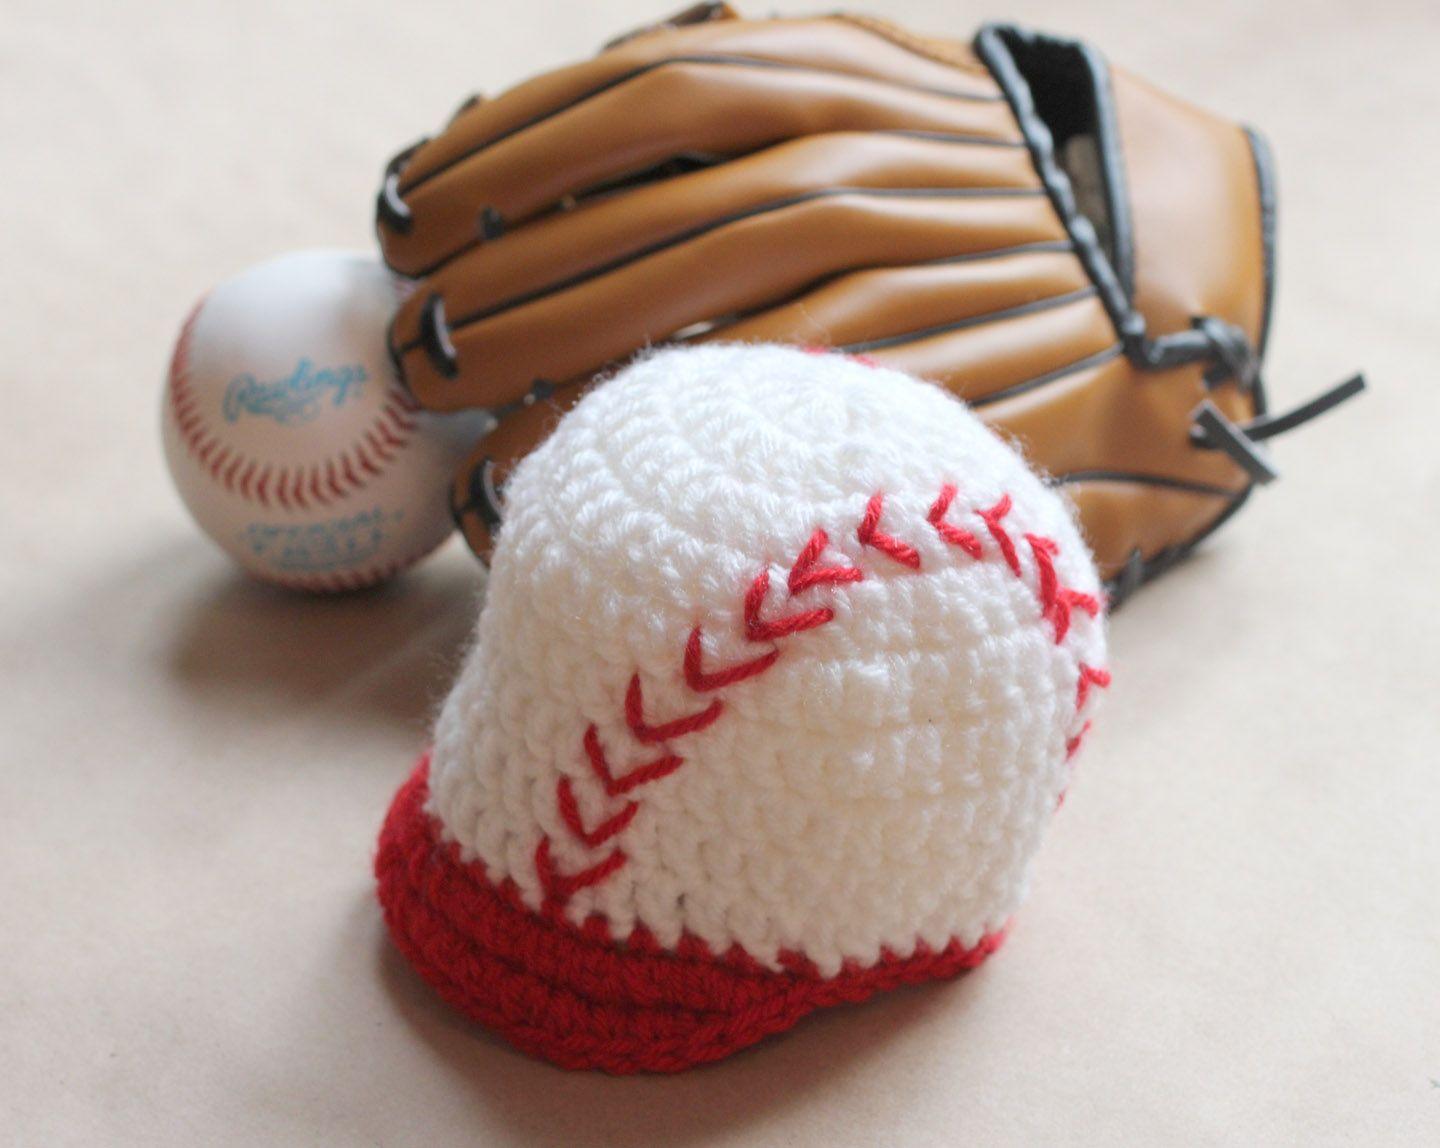 Crochet hat patterns when i saw crochet today was featuring a crochet hat patterns when i saw crochet today was featuring a baseball hat pattern in bankloansurffo Image collections